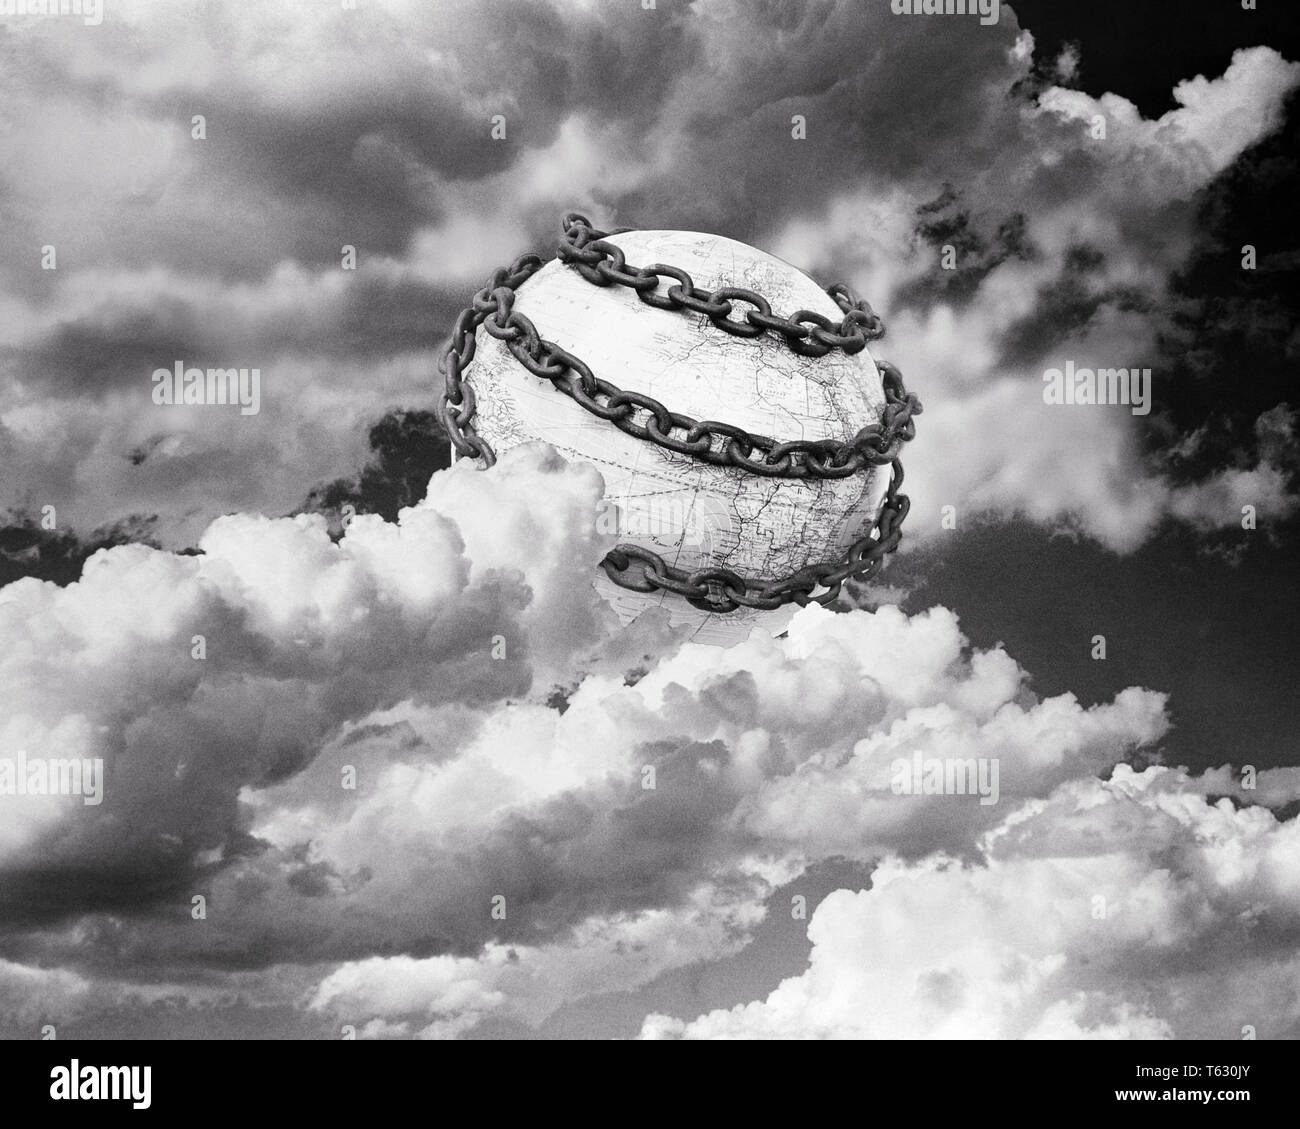 1930s SYMBOLIC ILLUSTRATION OF EARTH  WRAPPED IN CHAINS SURROUNDED BY CLOUDS - s4287 HAR001 HARS REPRESENTATION - Stock Image